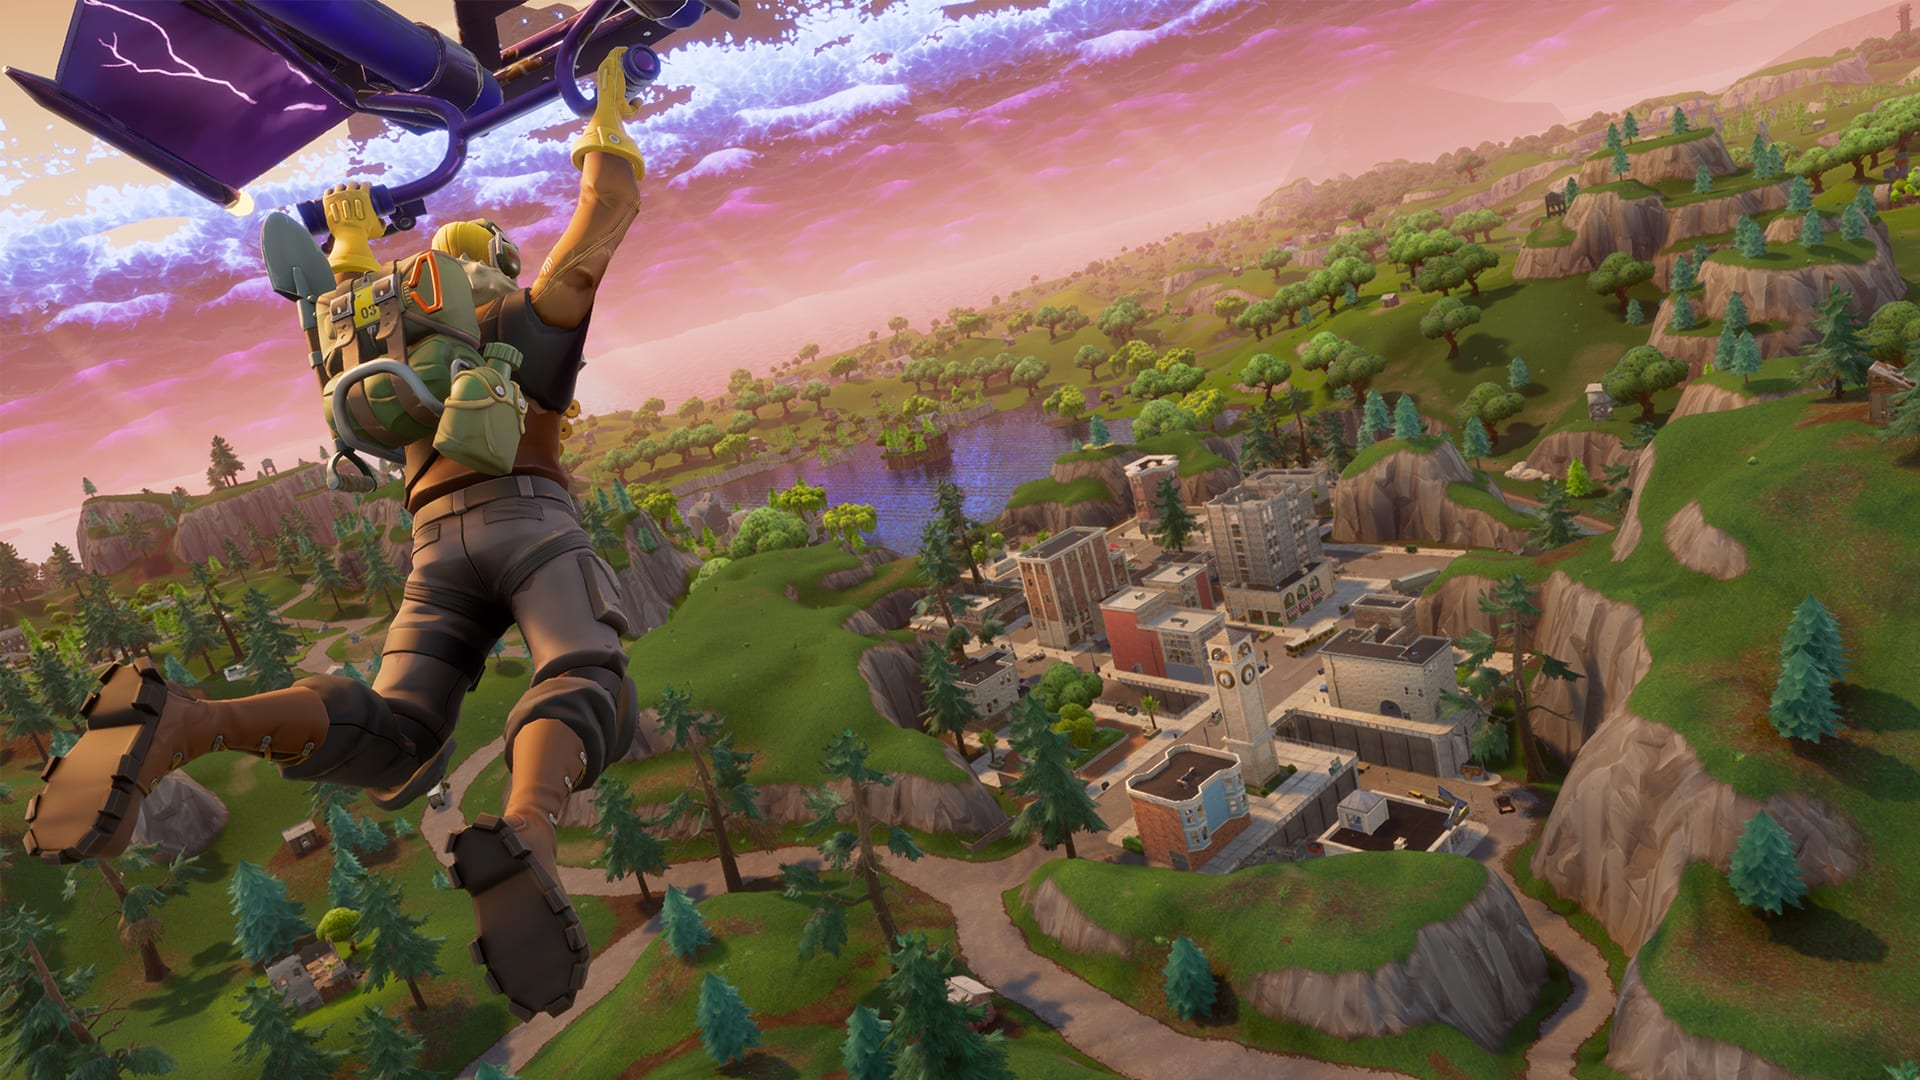 Zipline Locations Fortnite: Where to Find Them